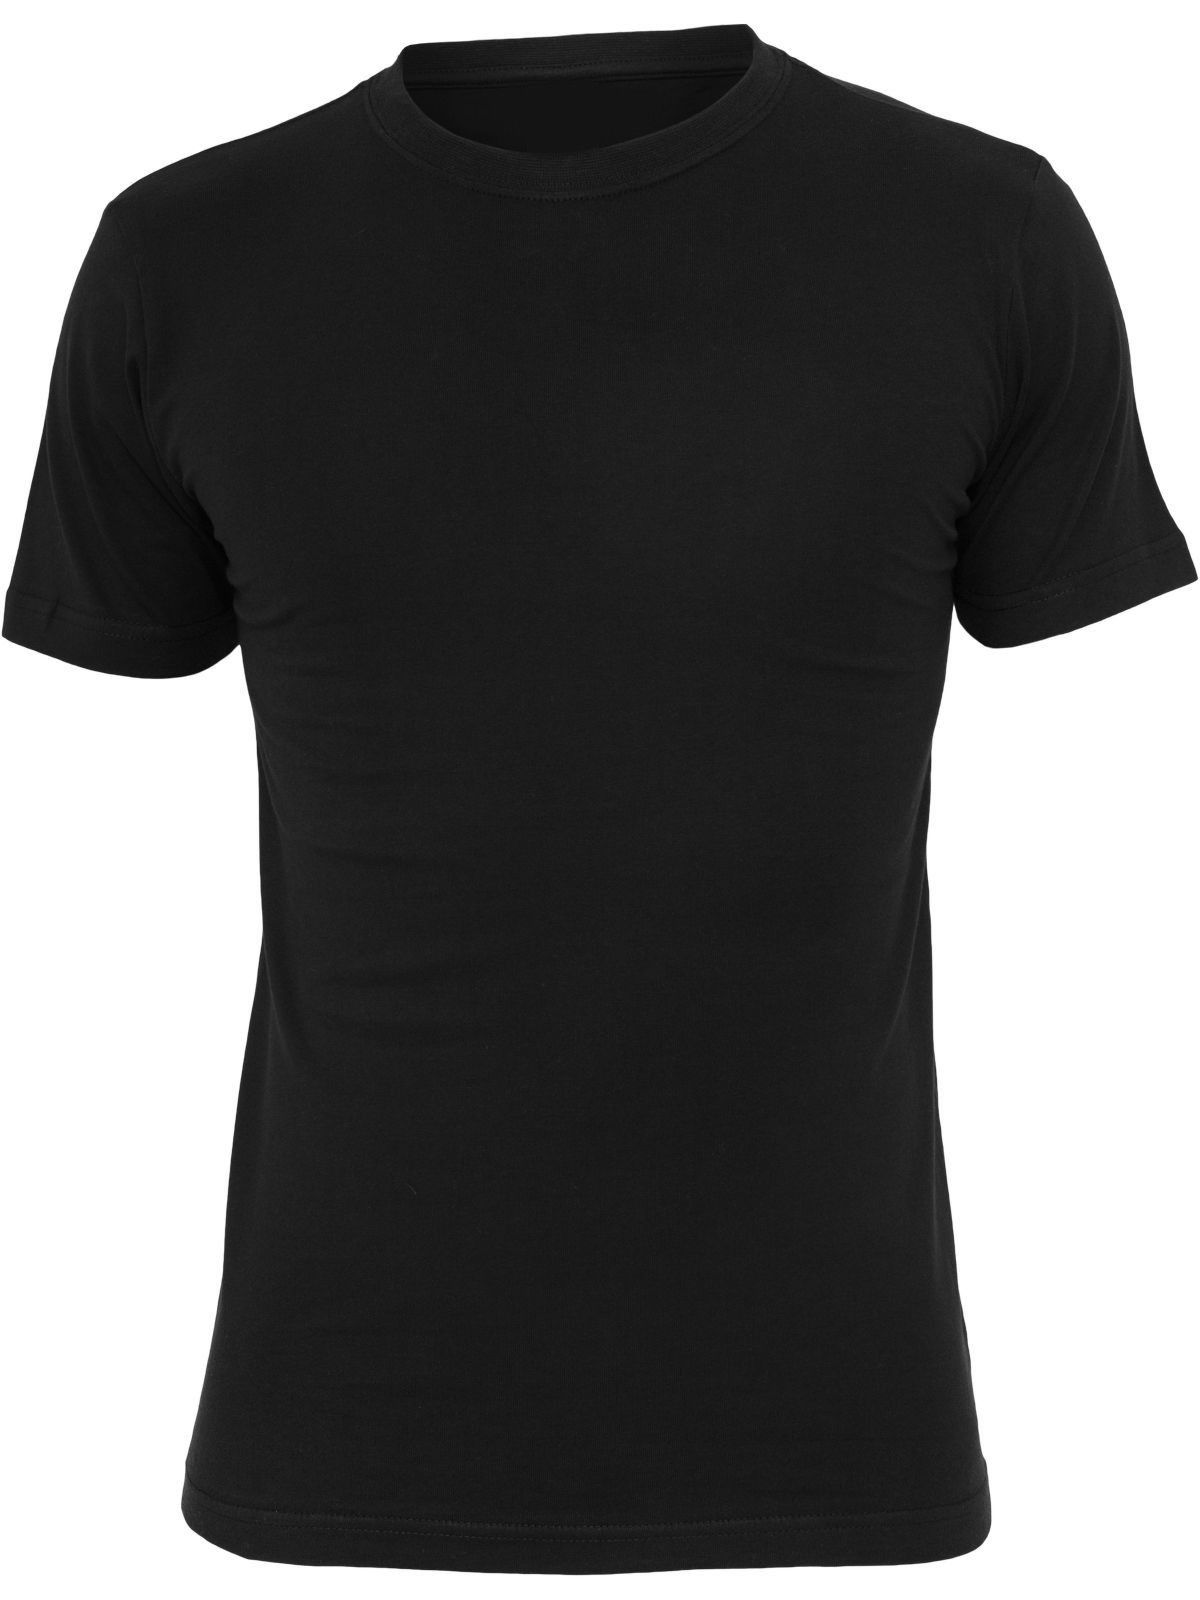 Black T Shirts With Custom Logo Print Available With Different Logo